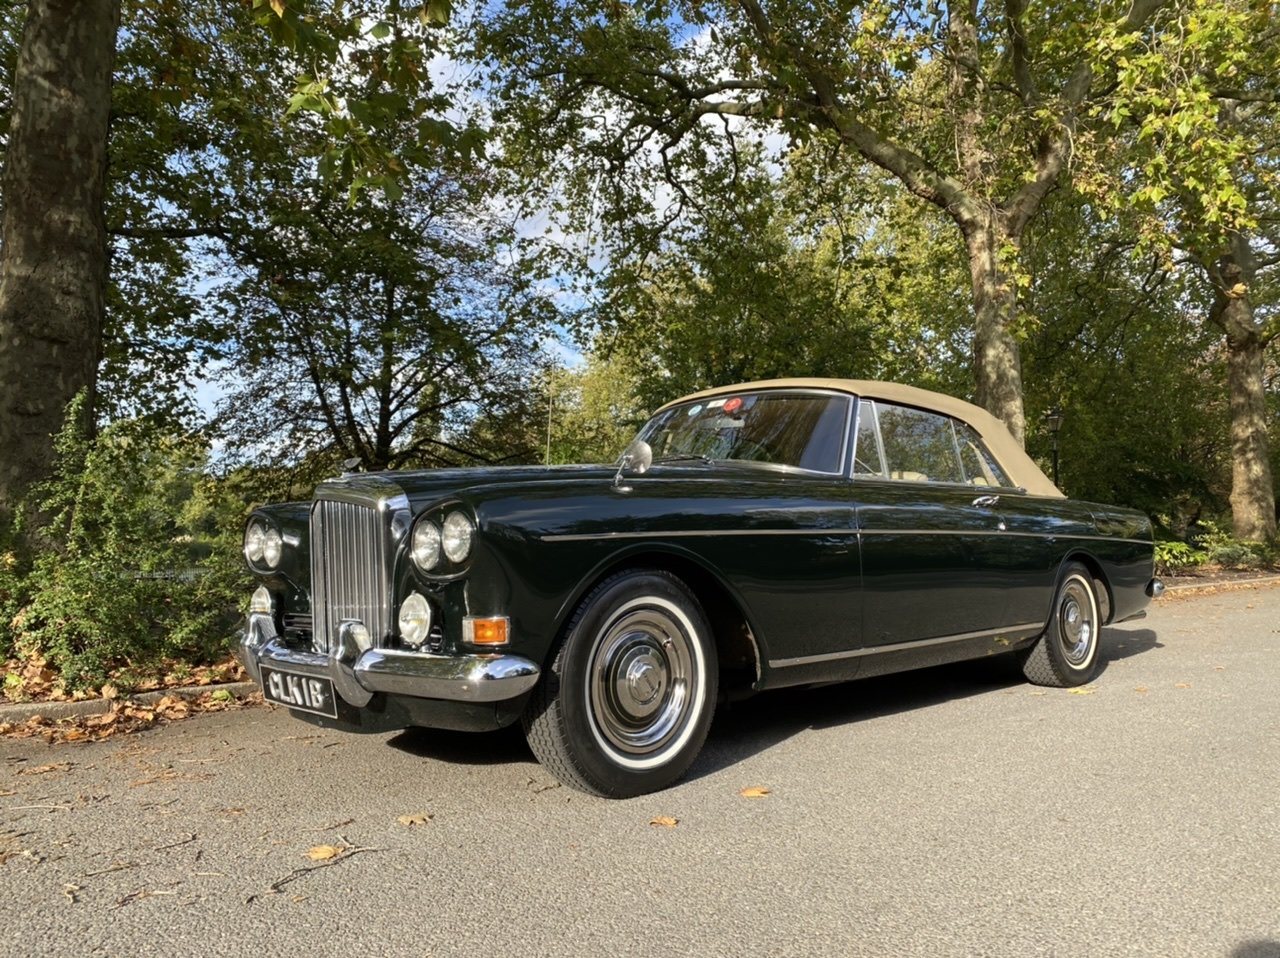 1964 Bentley S3 Continental Drop Head Coupe For Sale (picture 4 of 24)